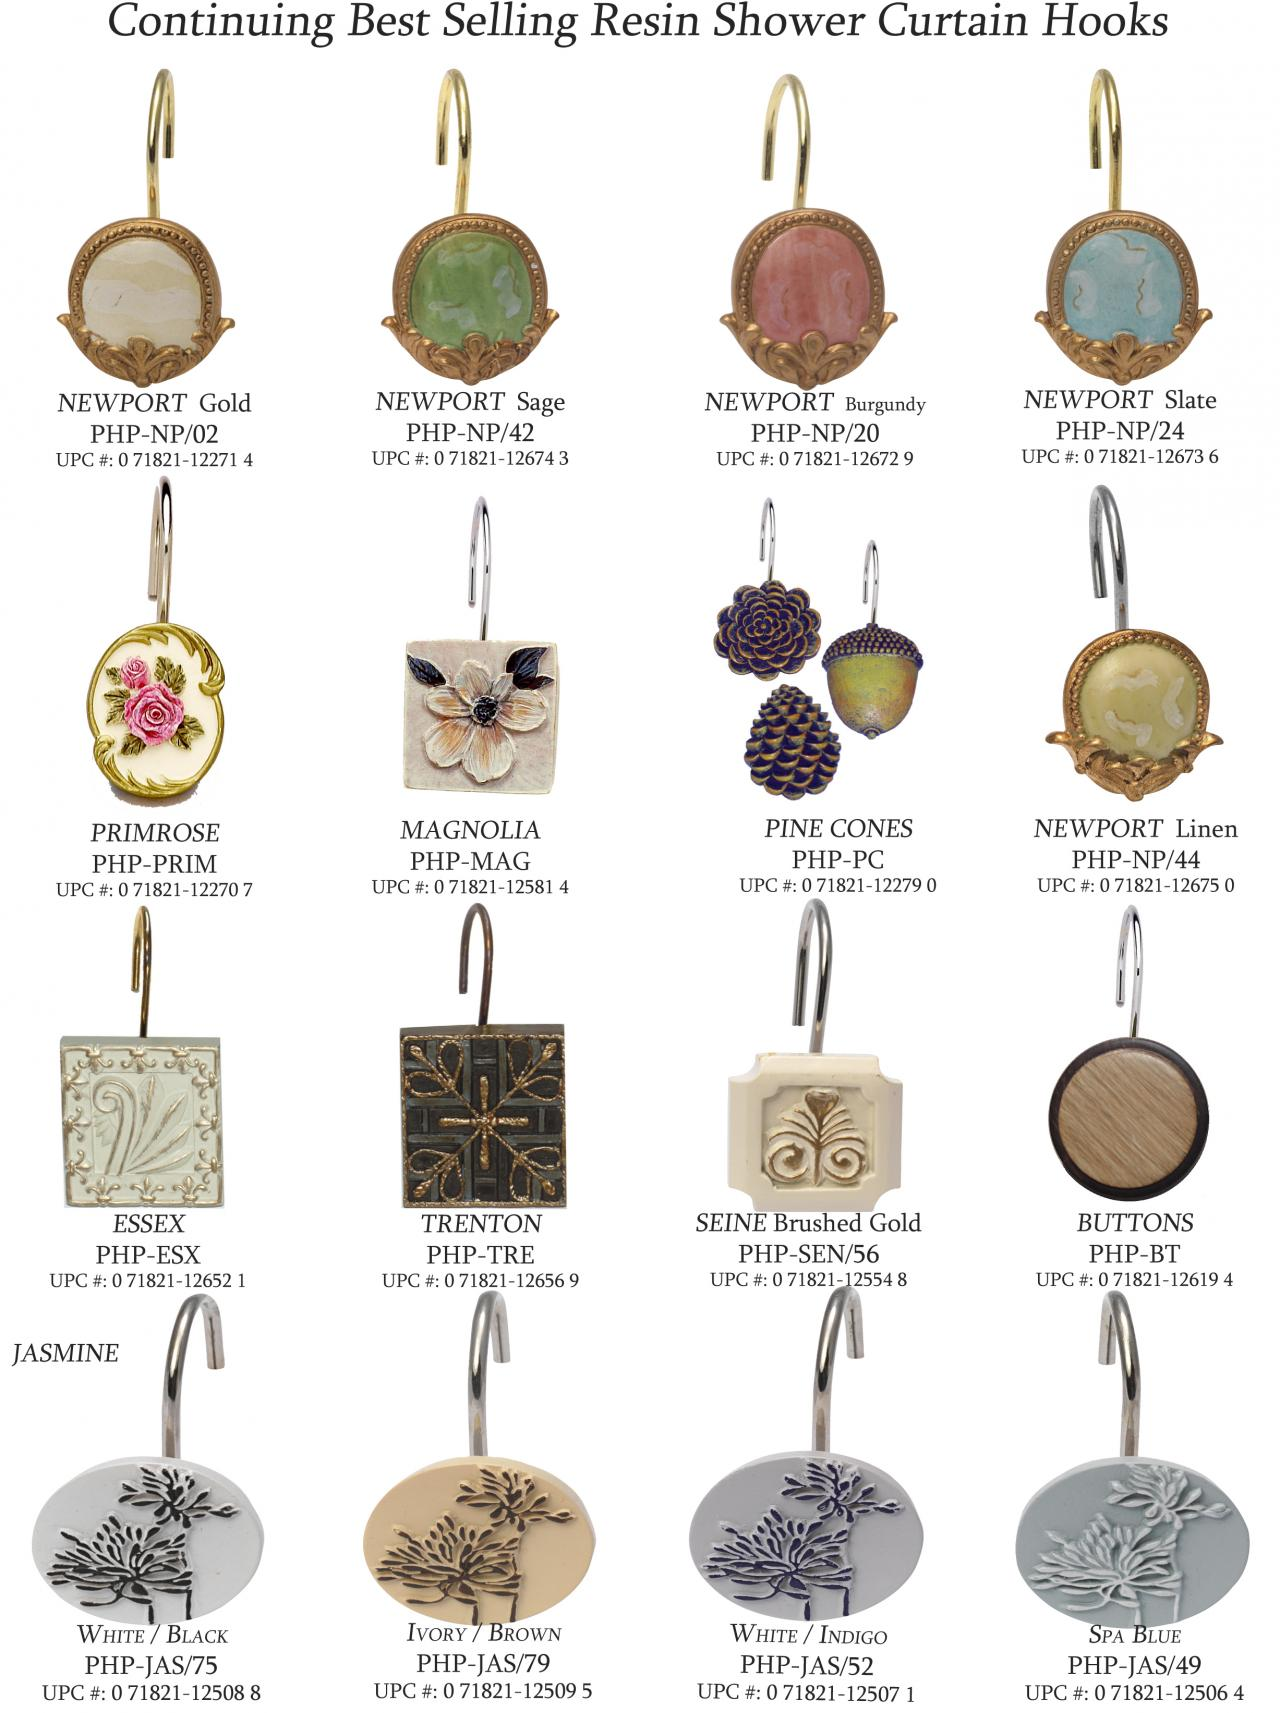 Carnation Home Fashions, Inc - Shower Curtain Hooks